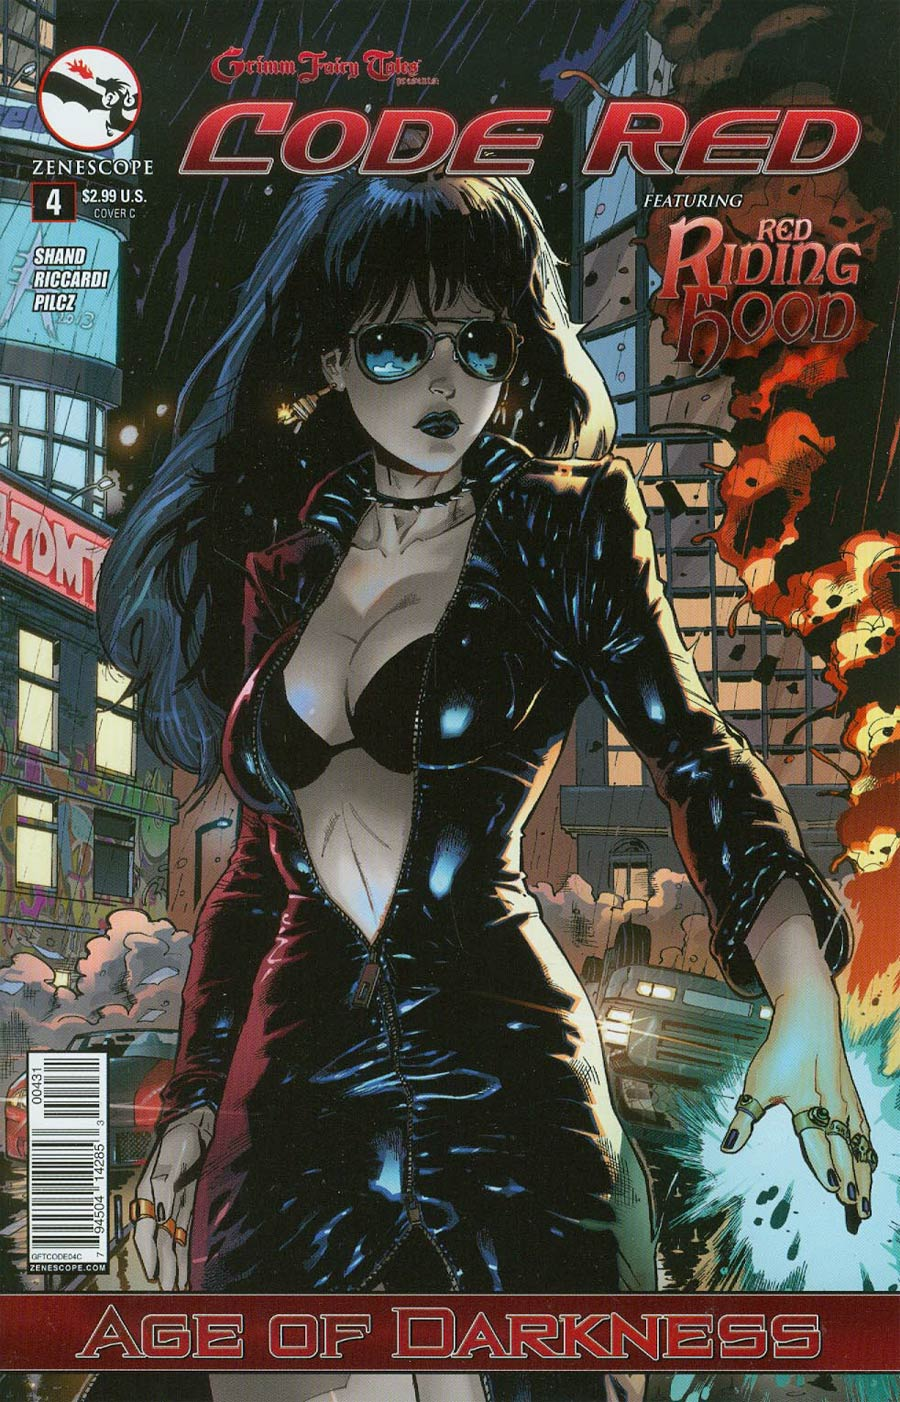 Grimm Fairy Tales Presents Code Red #4 Cover C Andrea Errico (Age Of Darkness Tie-In)